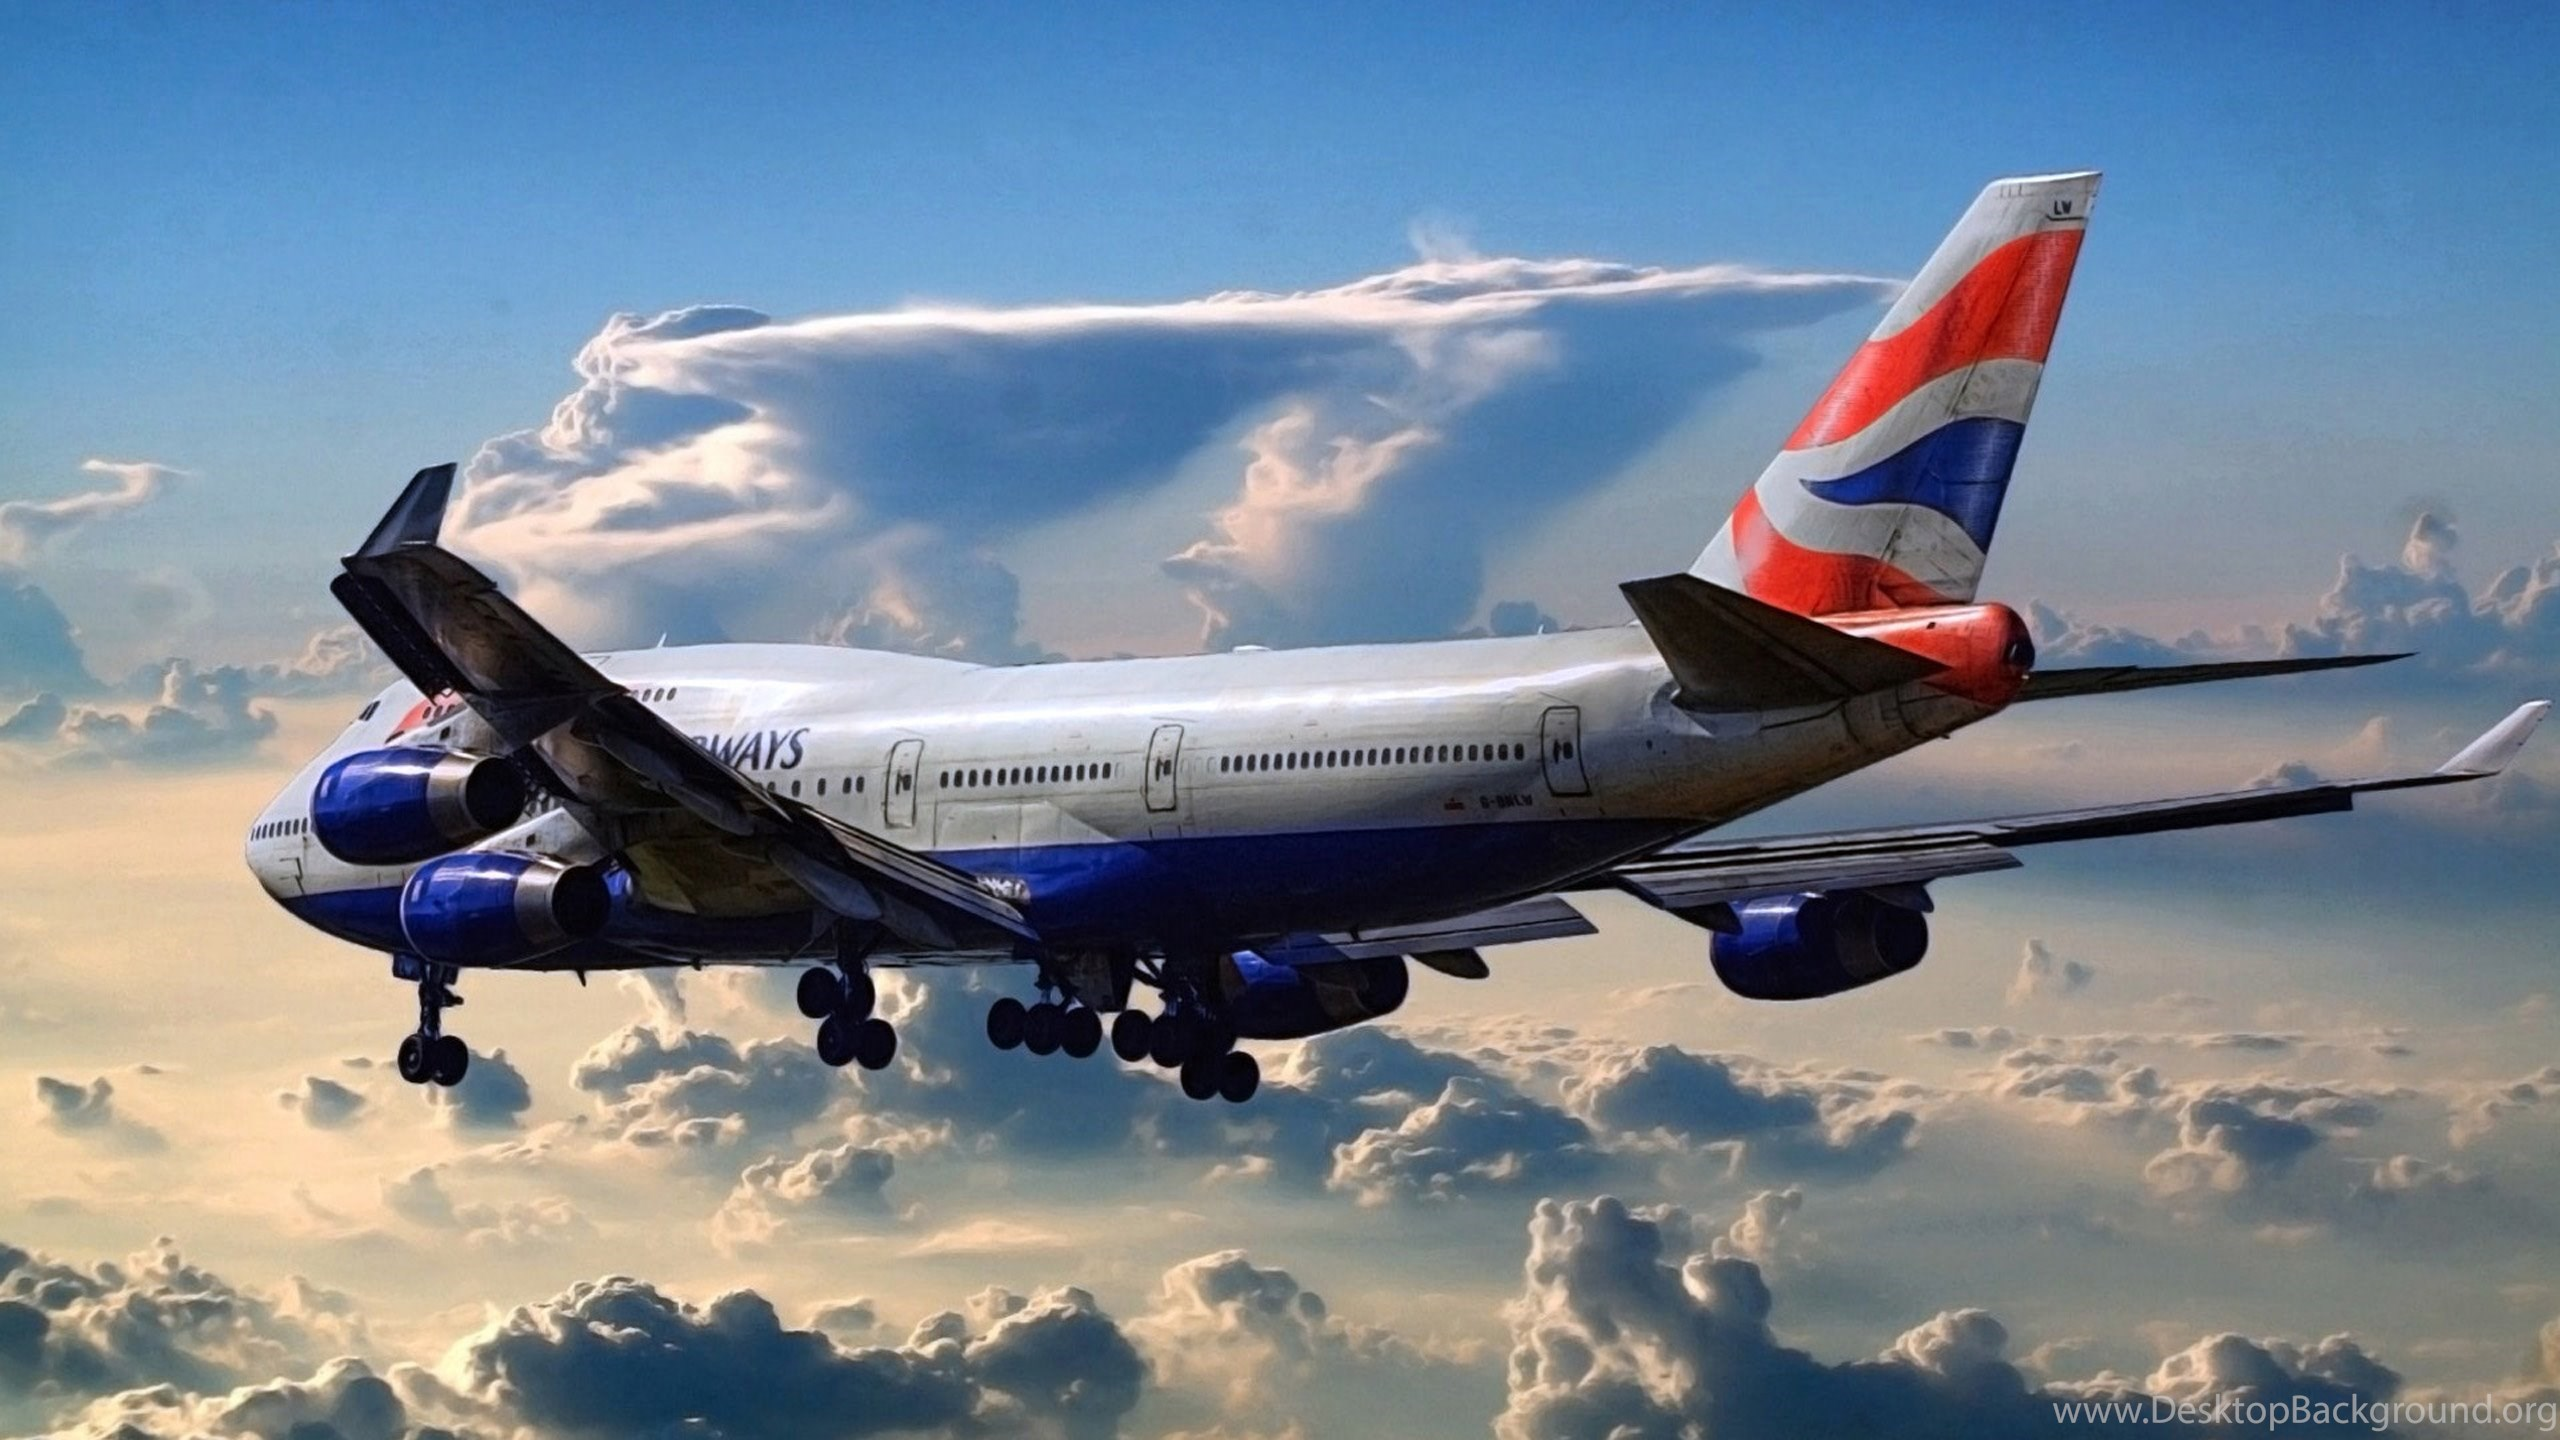 Boeing 747 Wallpapers 08 Hd Wallpapers Downloads Desktop Background